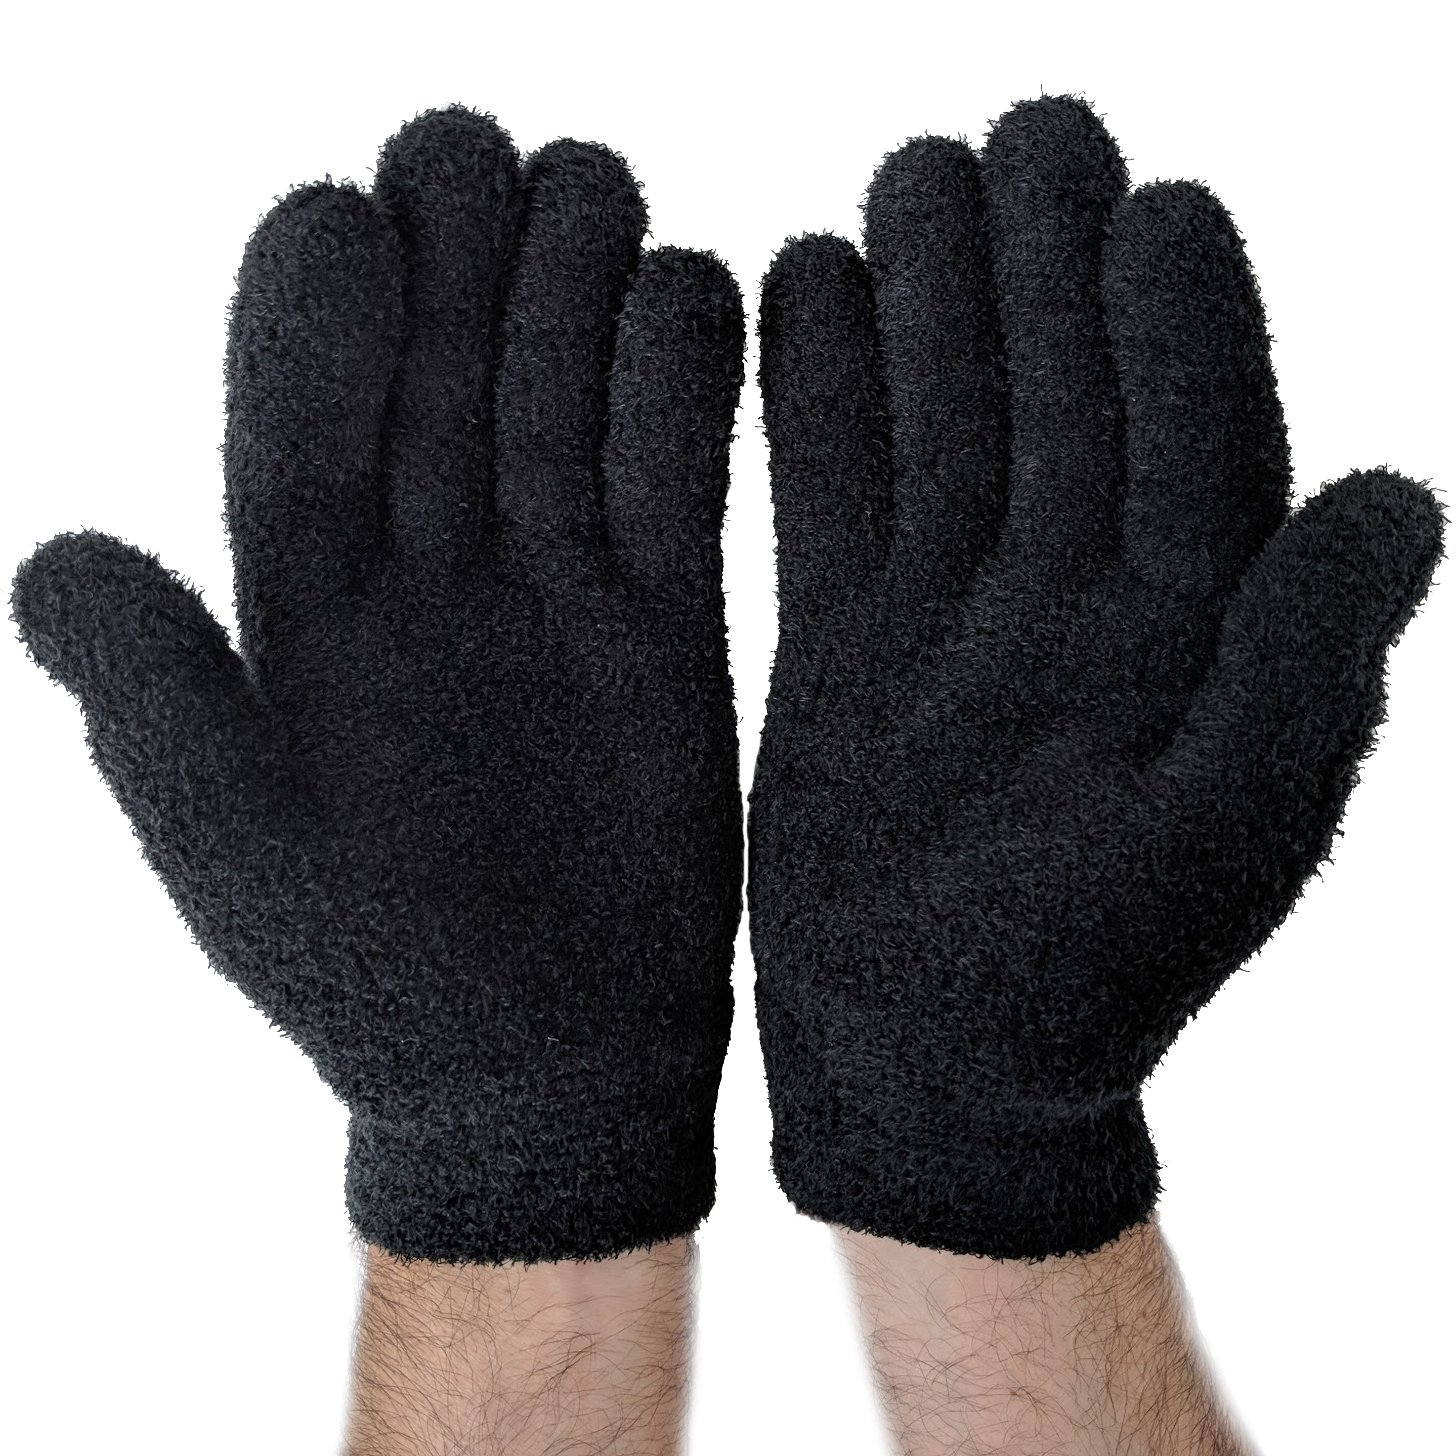 NatraCure Gel Moisturizing Gloves - Black (Lavender Scent) – (For Anti-Aging and Relief from Eczema and Dry, Rough, and Cracked Hands)